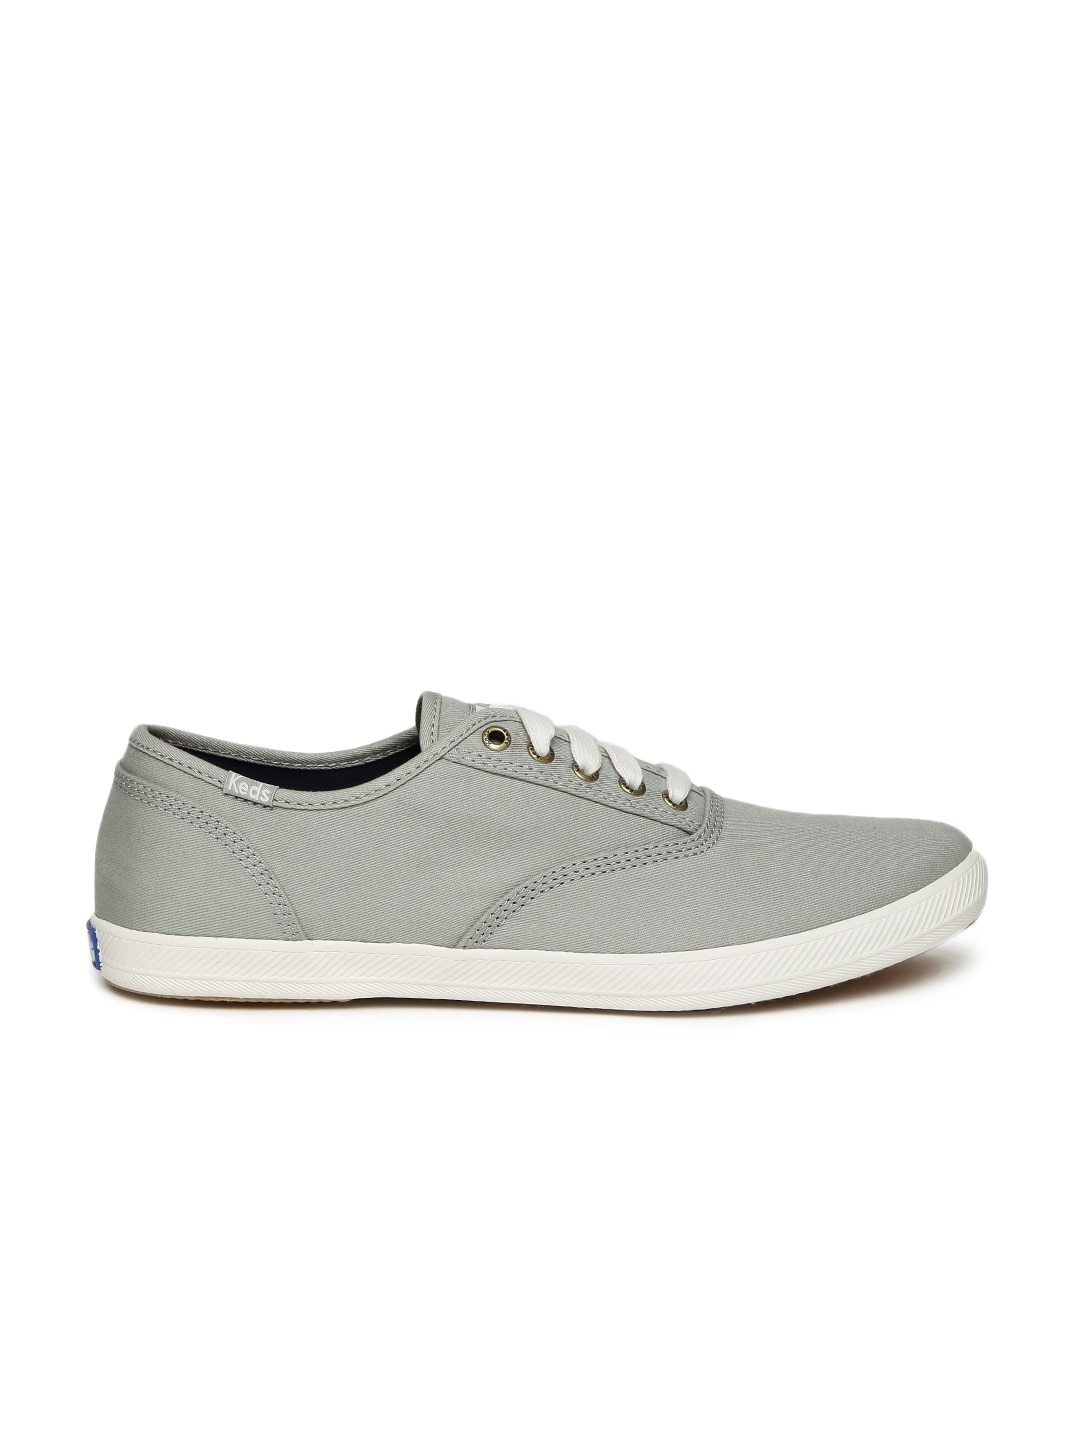 63bbe5910841a Shoes - Buy Shoes for Men